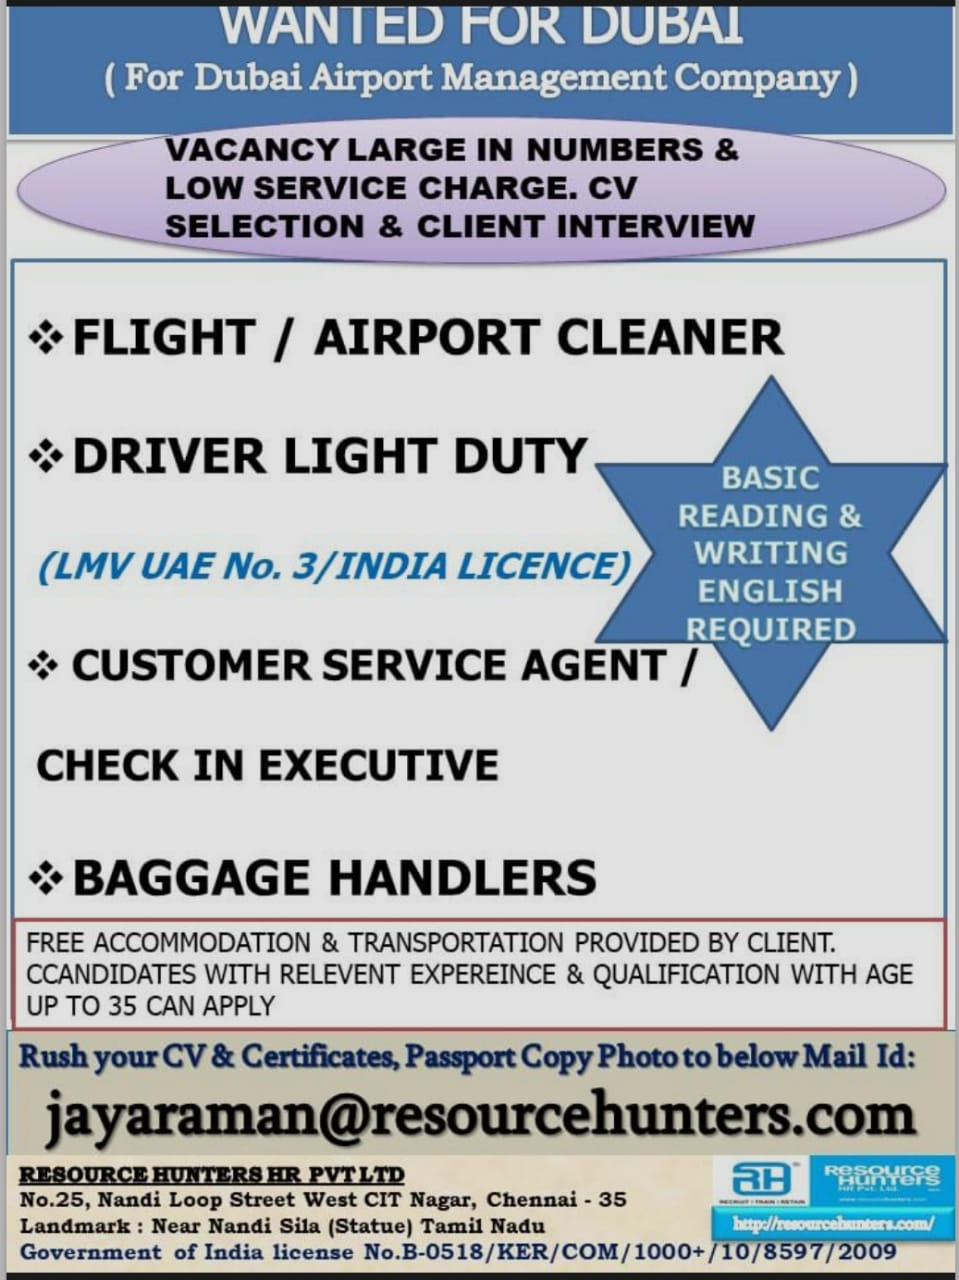 REQUIREMENT FOR DUBAI AIR PORT MAINTENANCE COMPANY